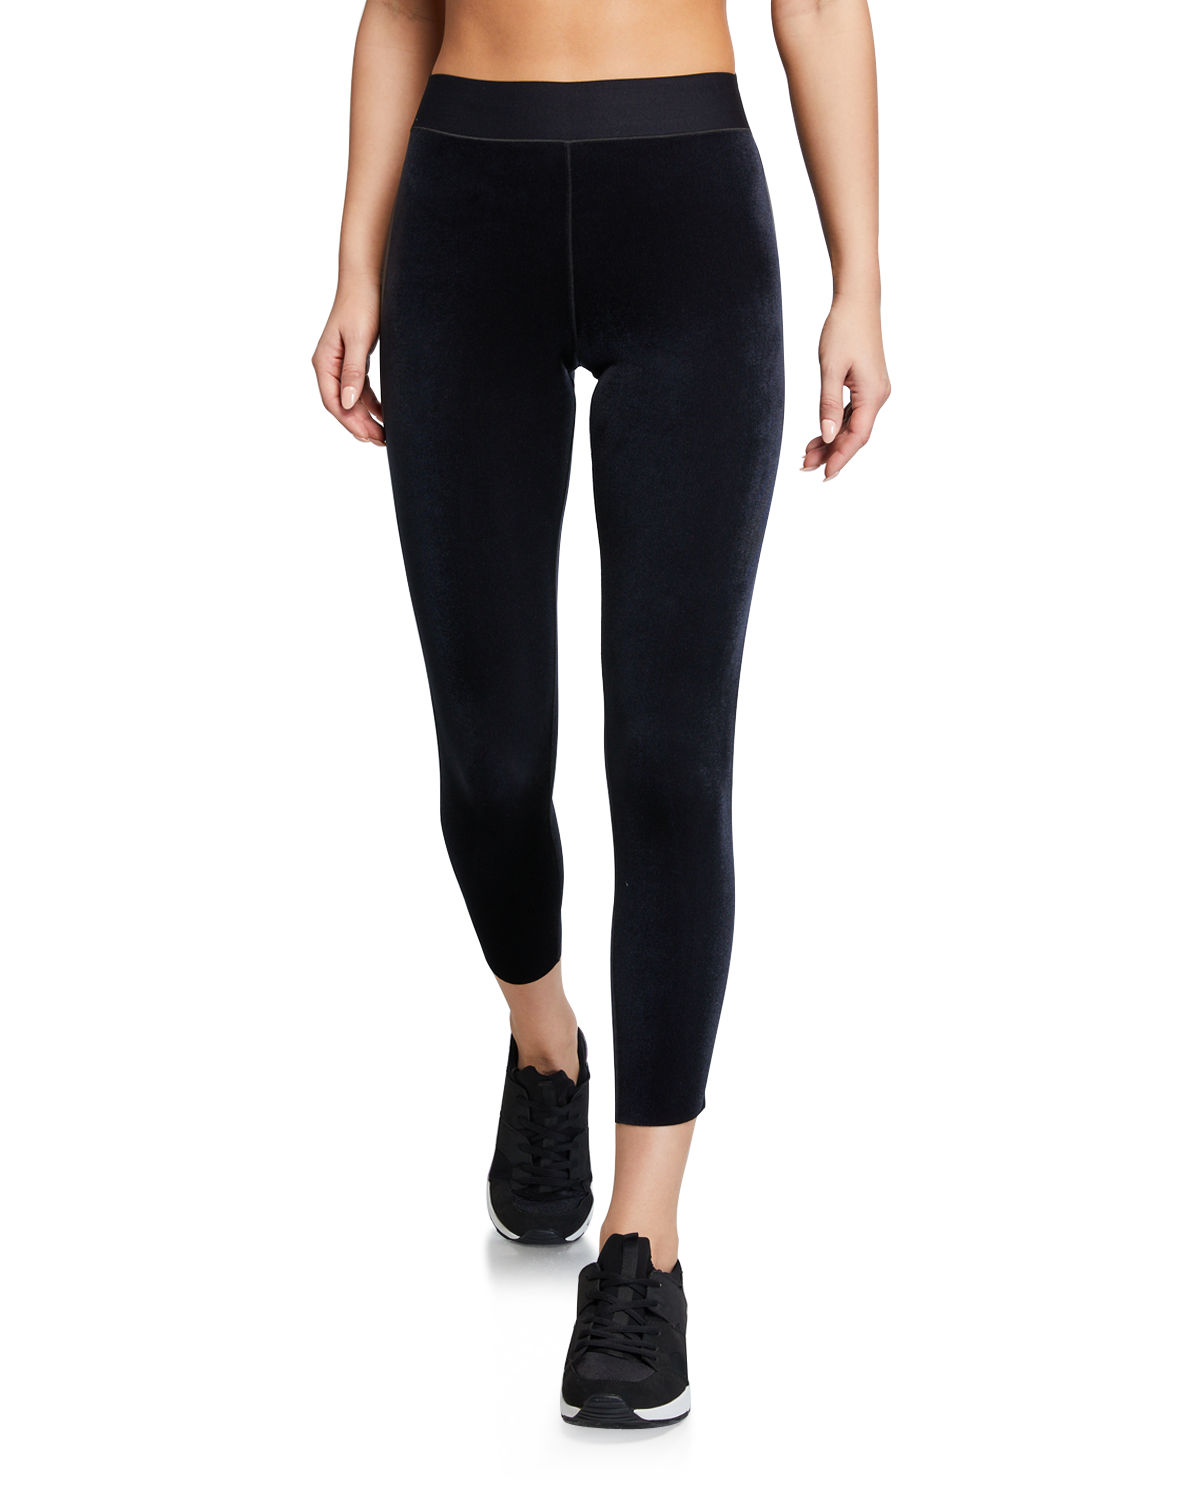 Ultracor ULTRA HIGH VELVET 7/8 LEGGINGS